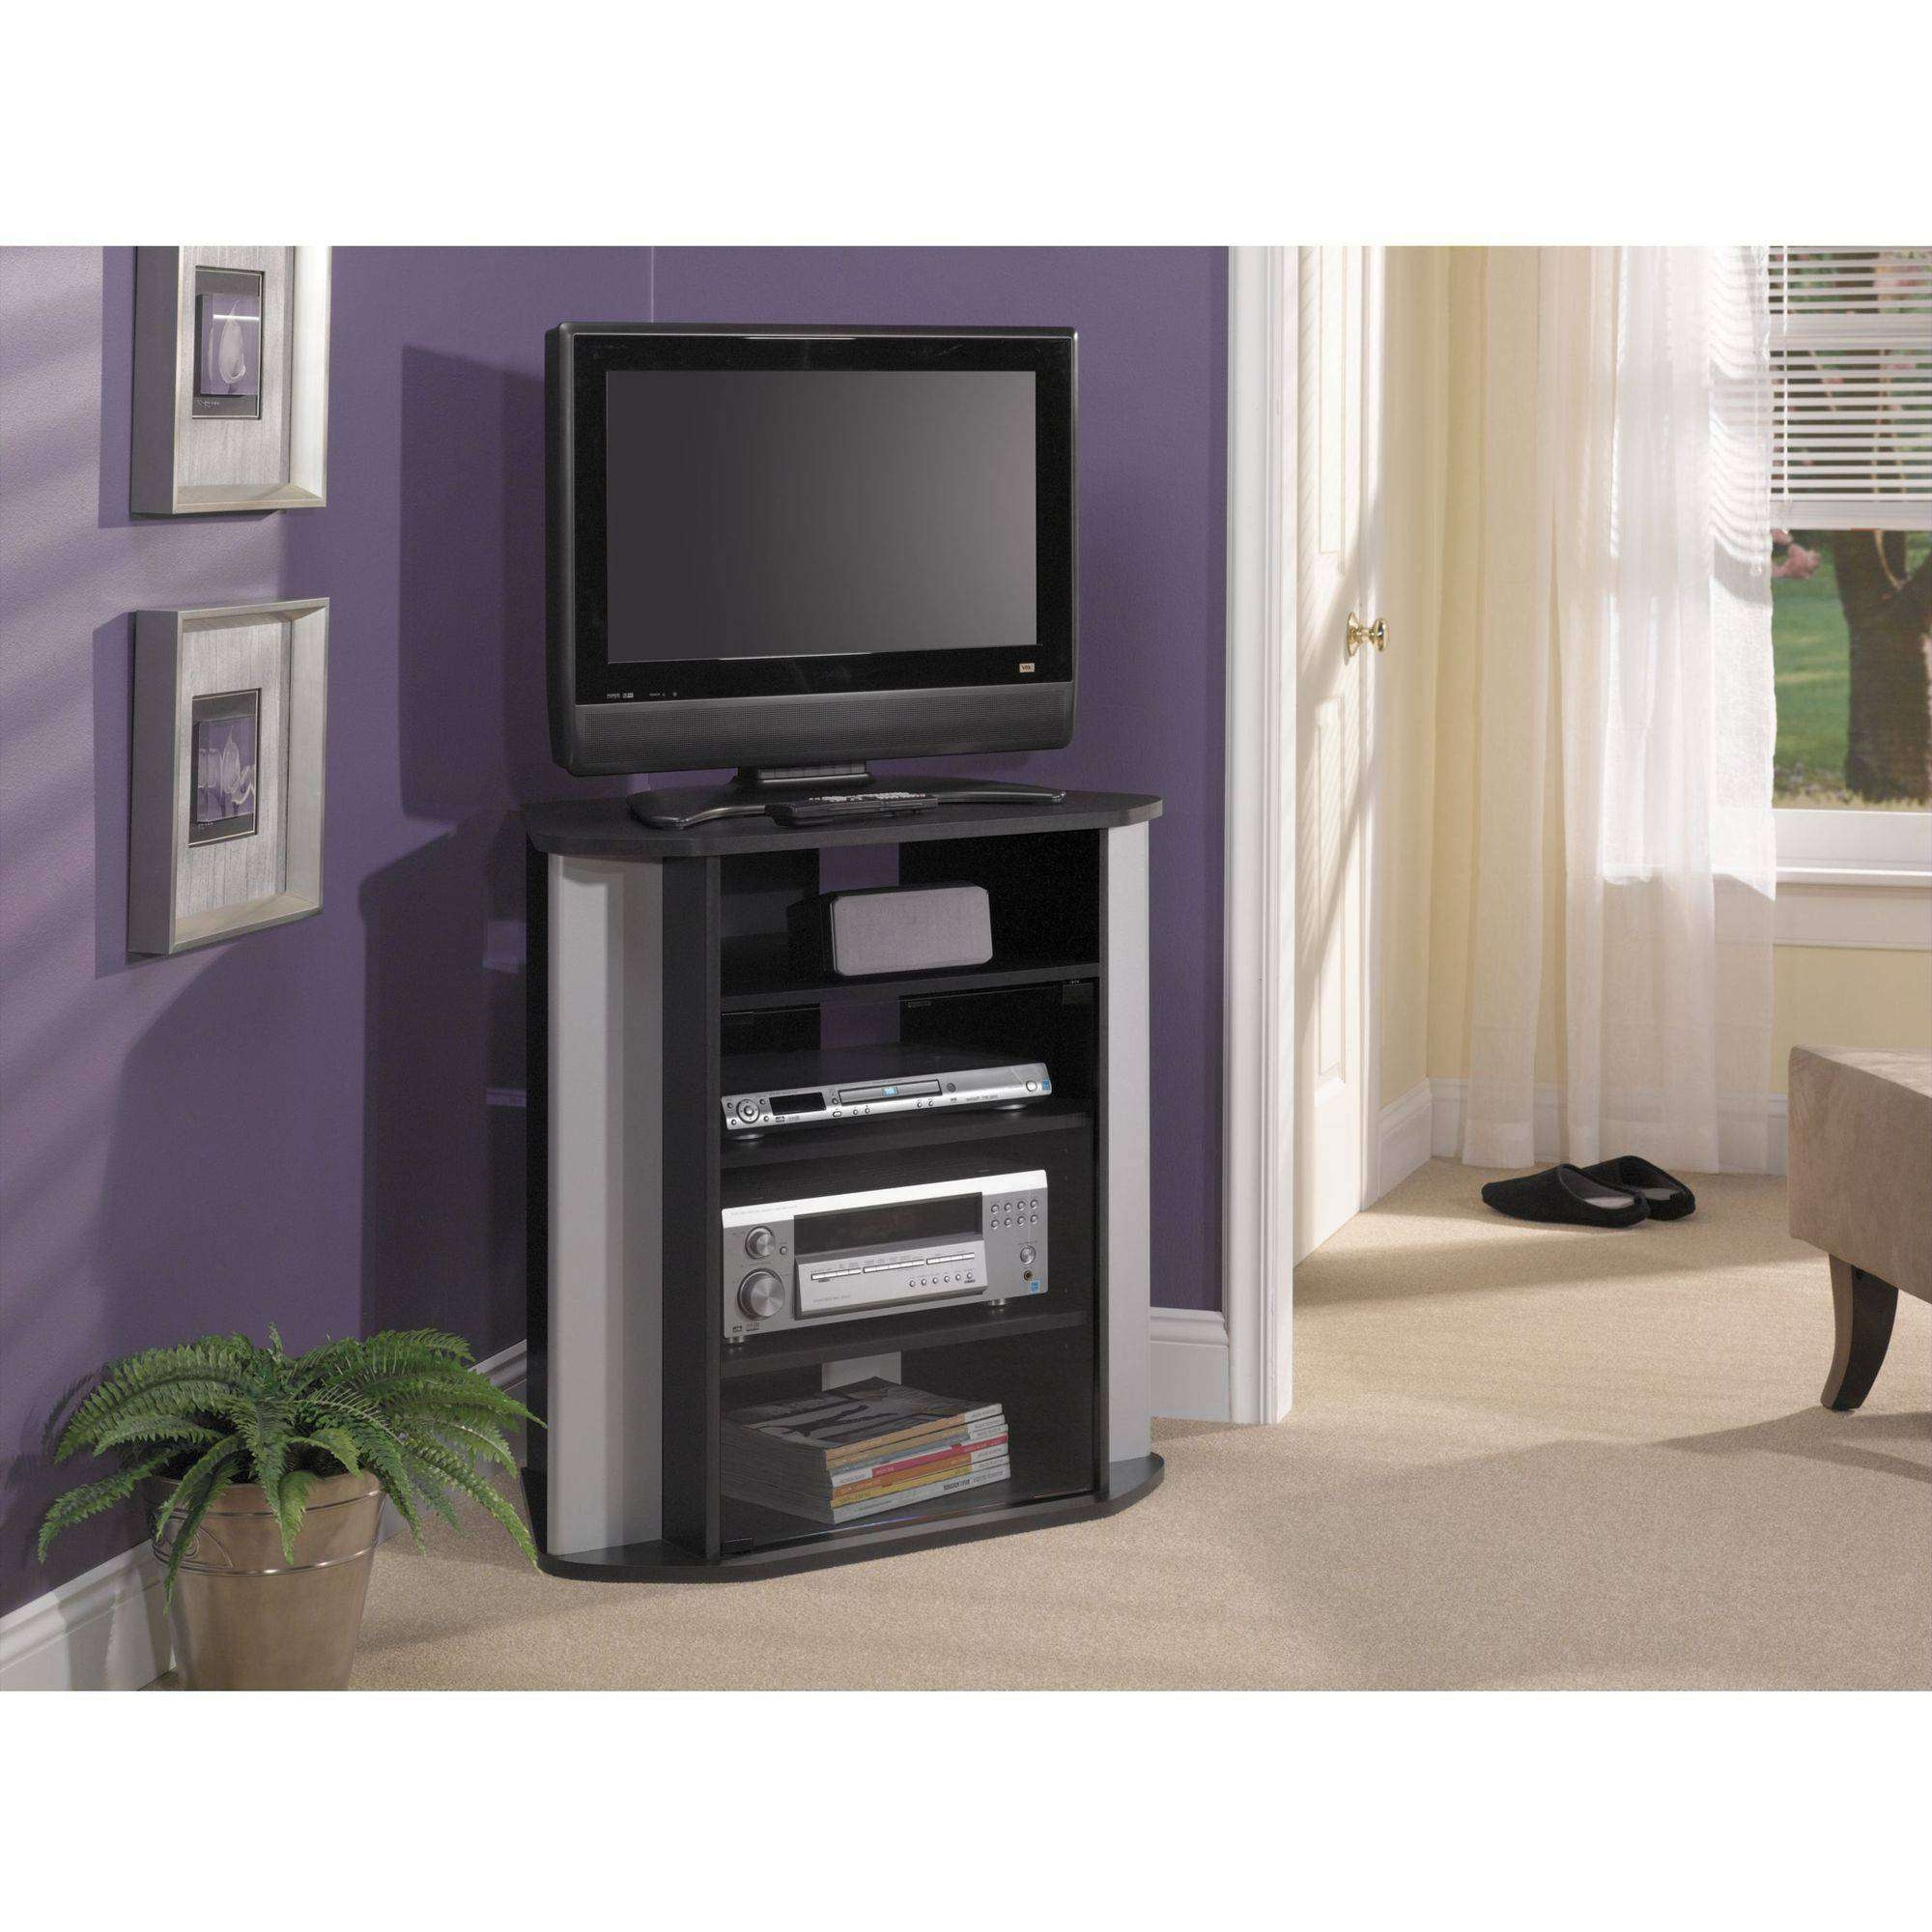 Bush Visions Black Tall Corner Tv Stand, For Tvs Up To 37 Throughout Black Wood Corner Tv Stands (View 5 of 15)